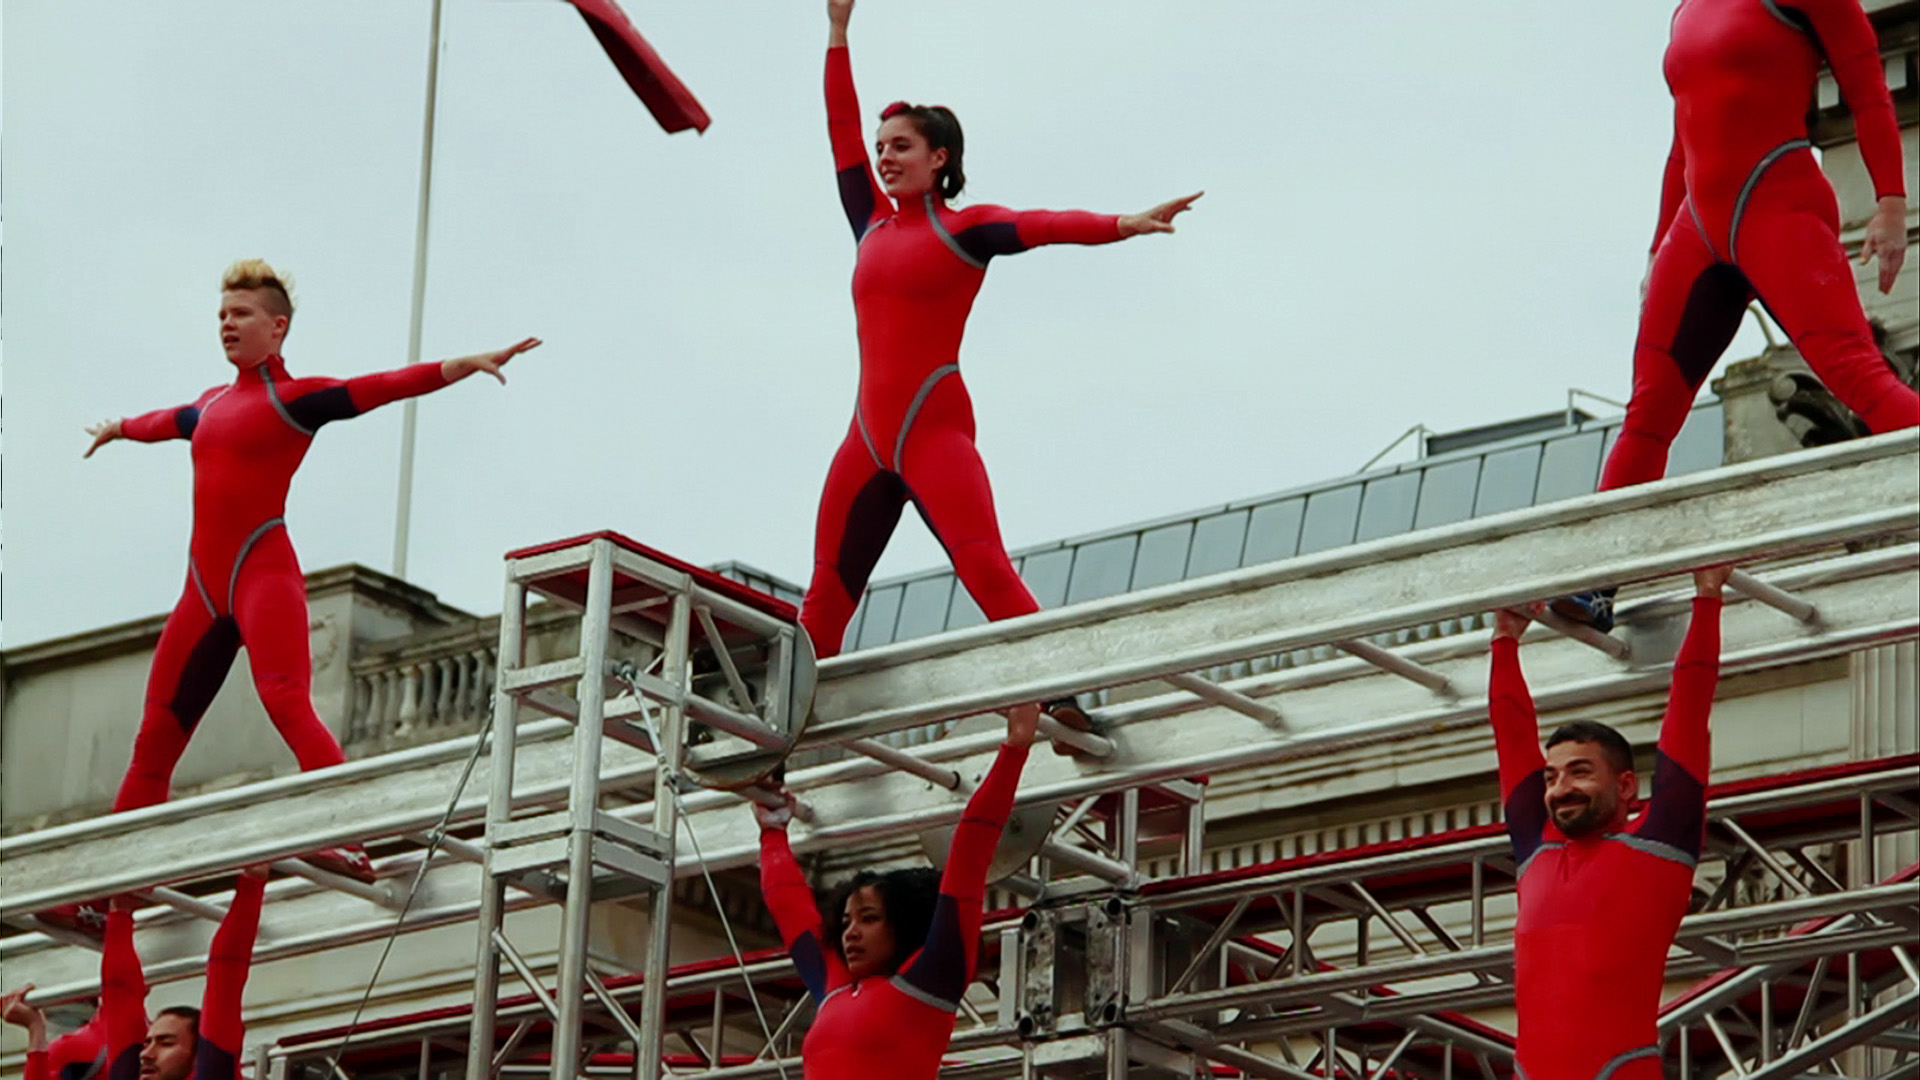 """STREB performing """"Ascension"""" during """"One Extraordinary Day"""" in London 2012."""